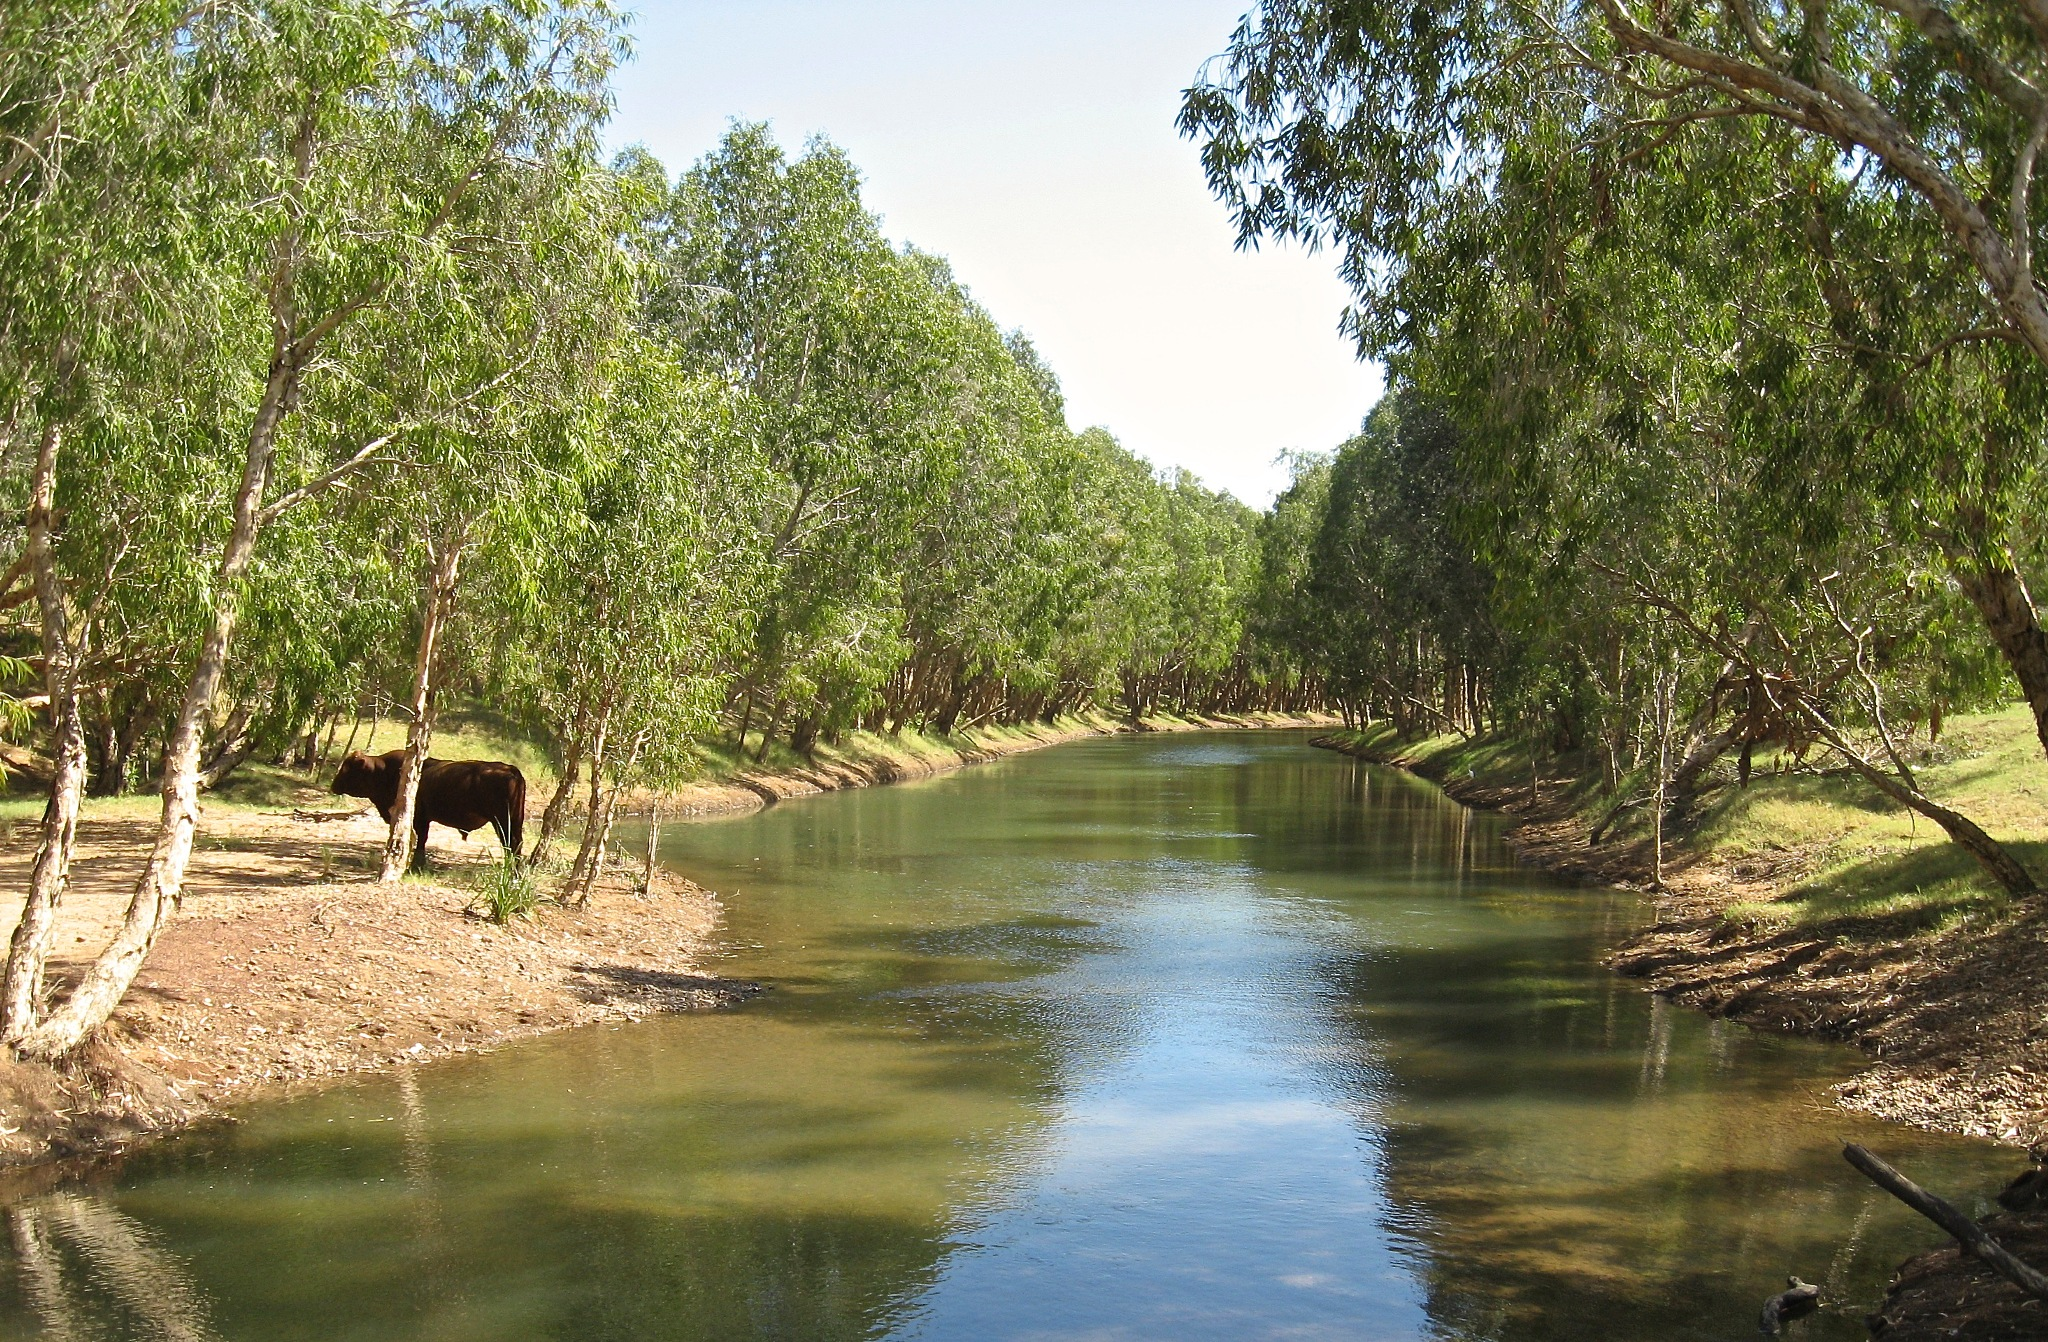 Kimberley canal. by Rovert